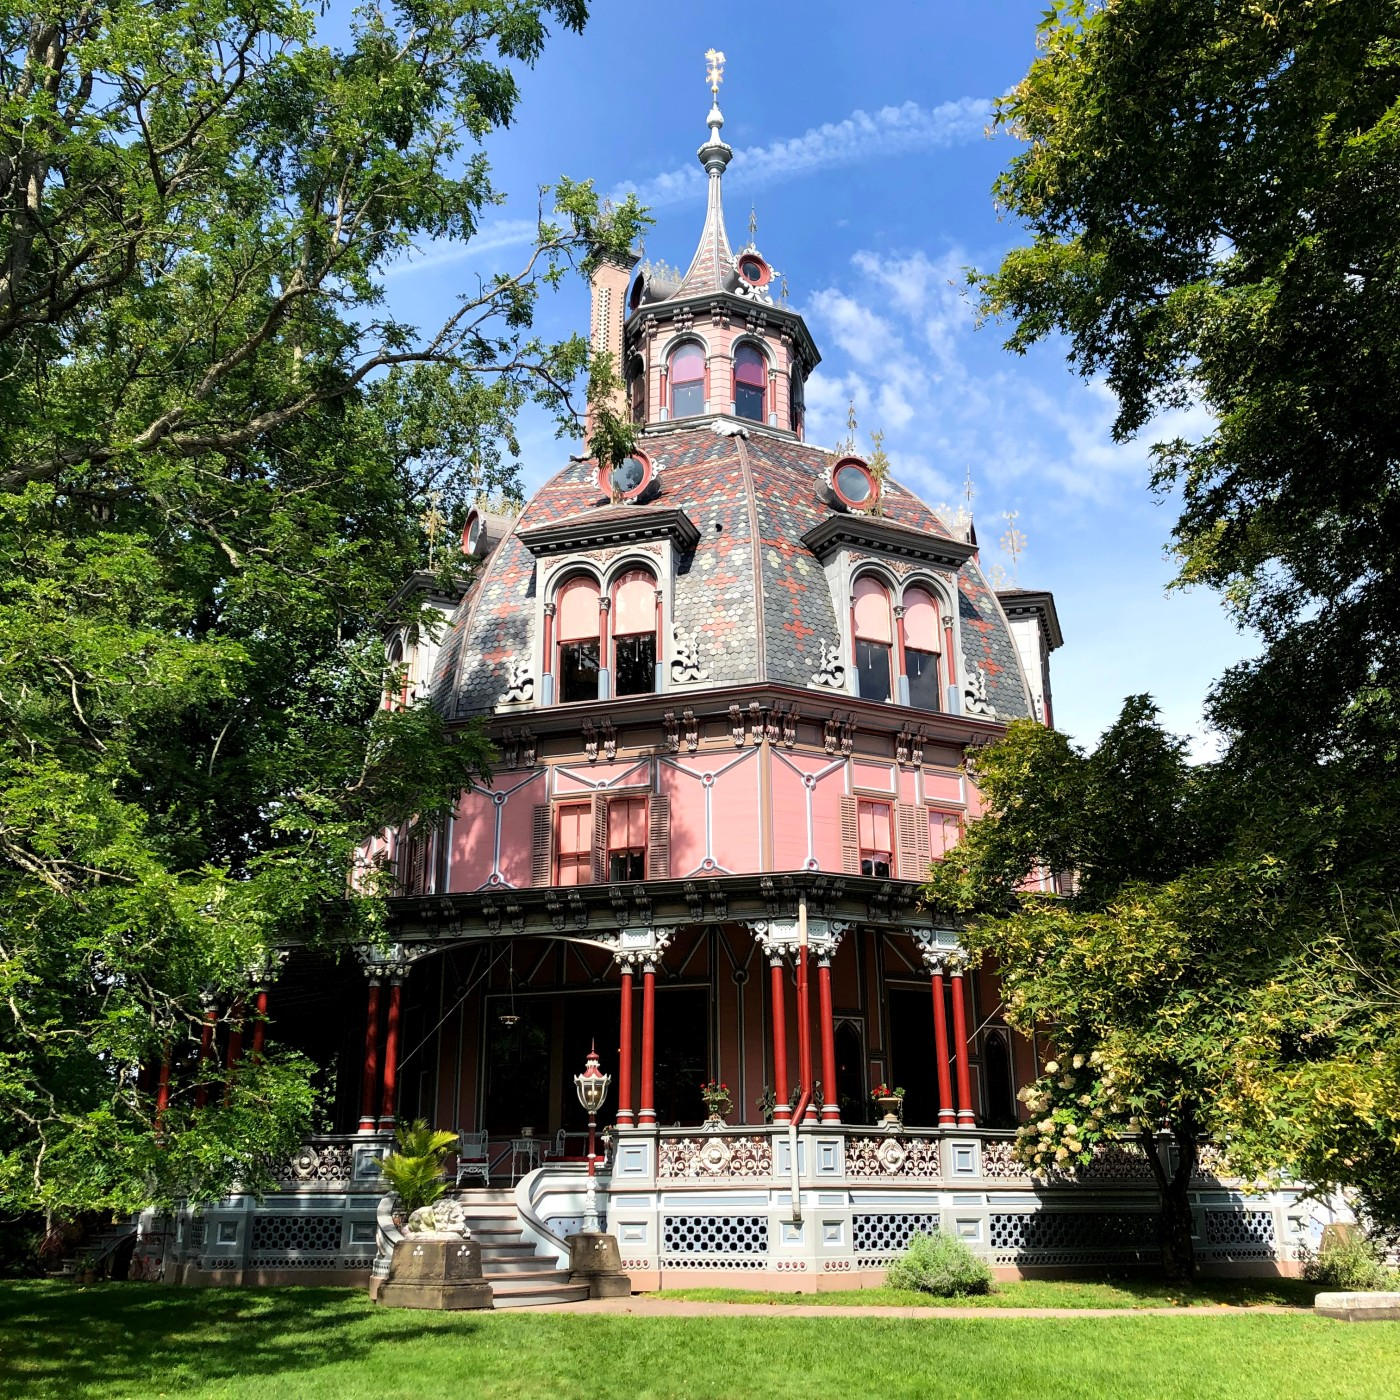 front view of the Armour-Stiner Octagon House